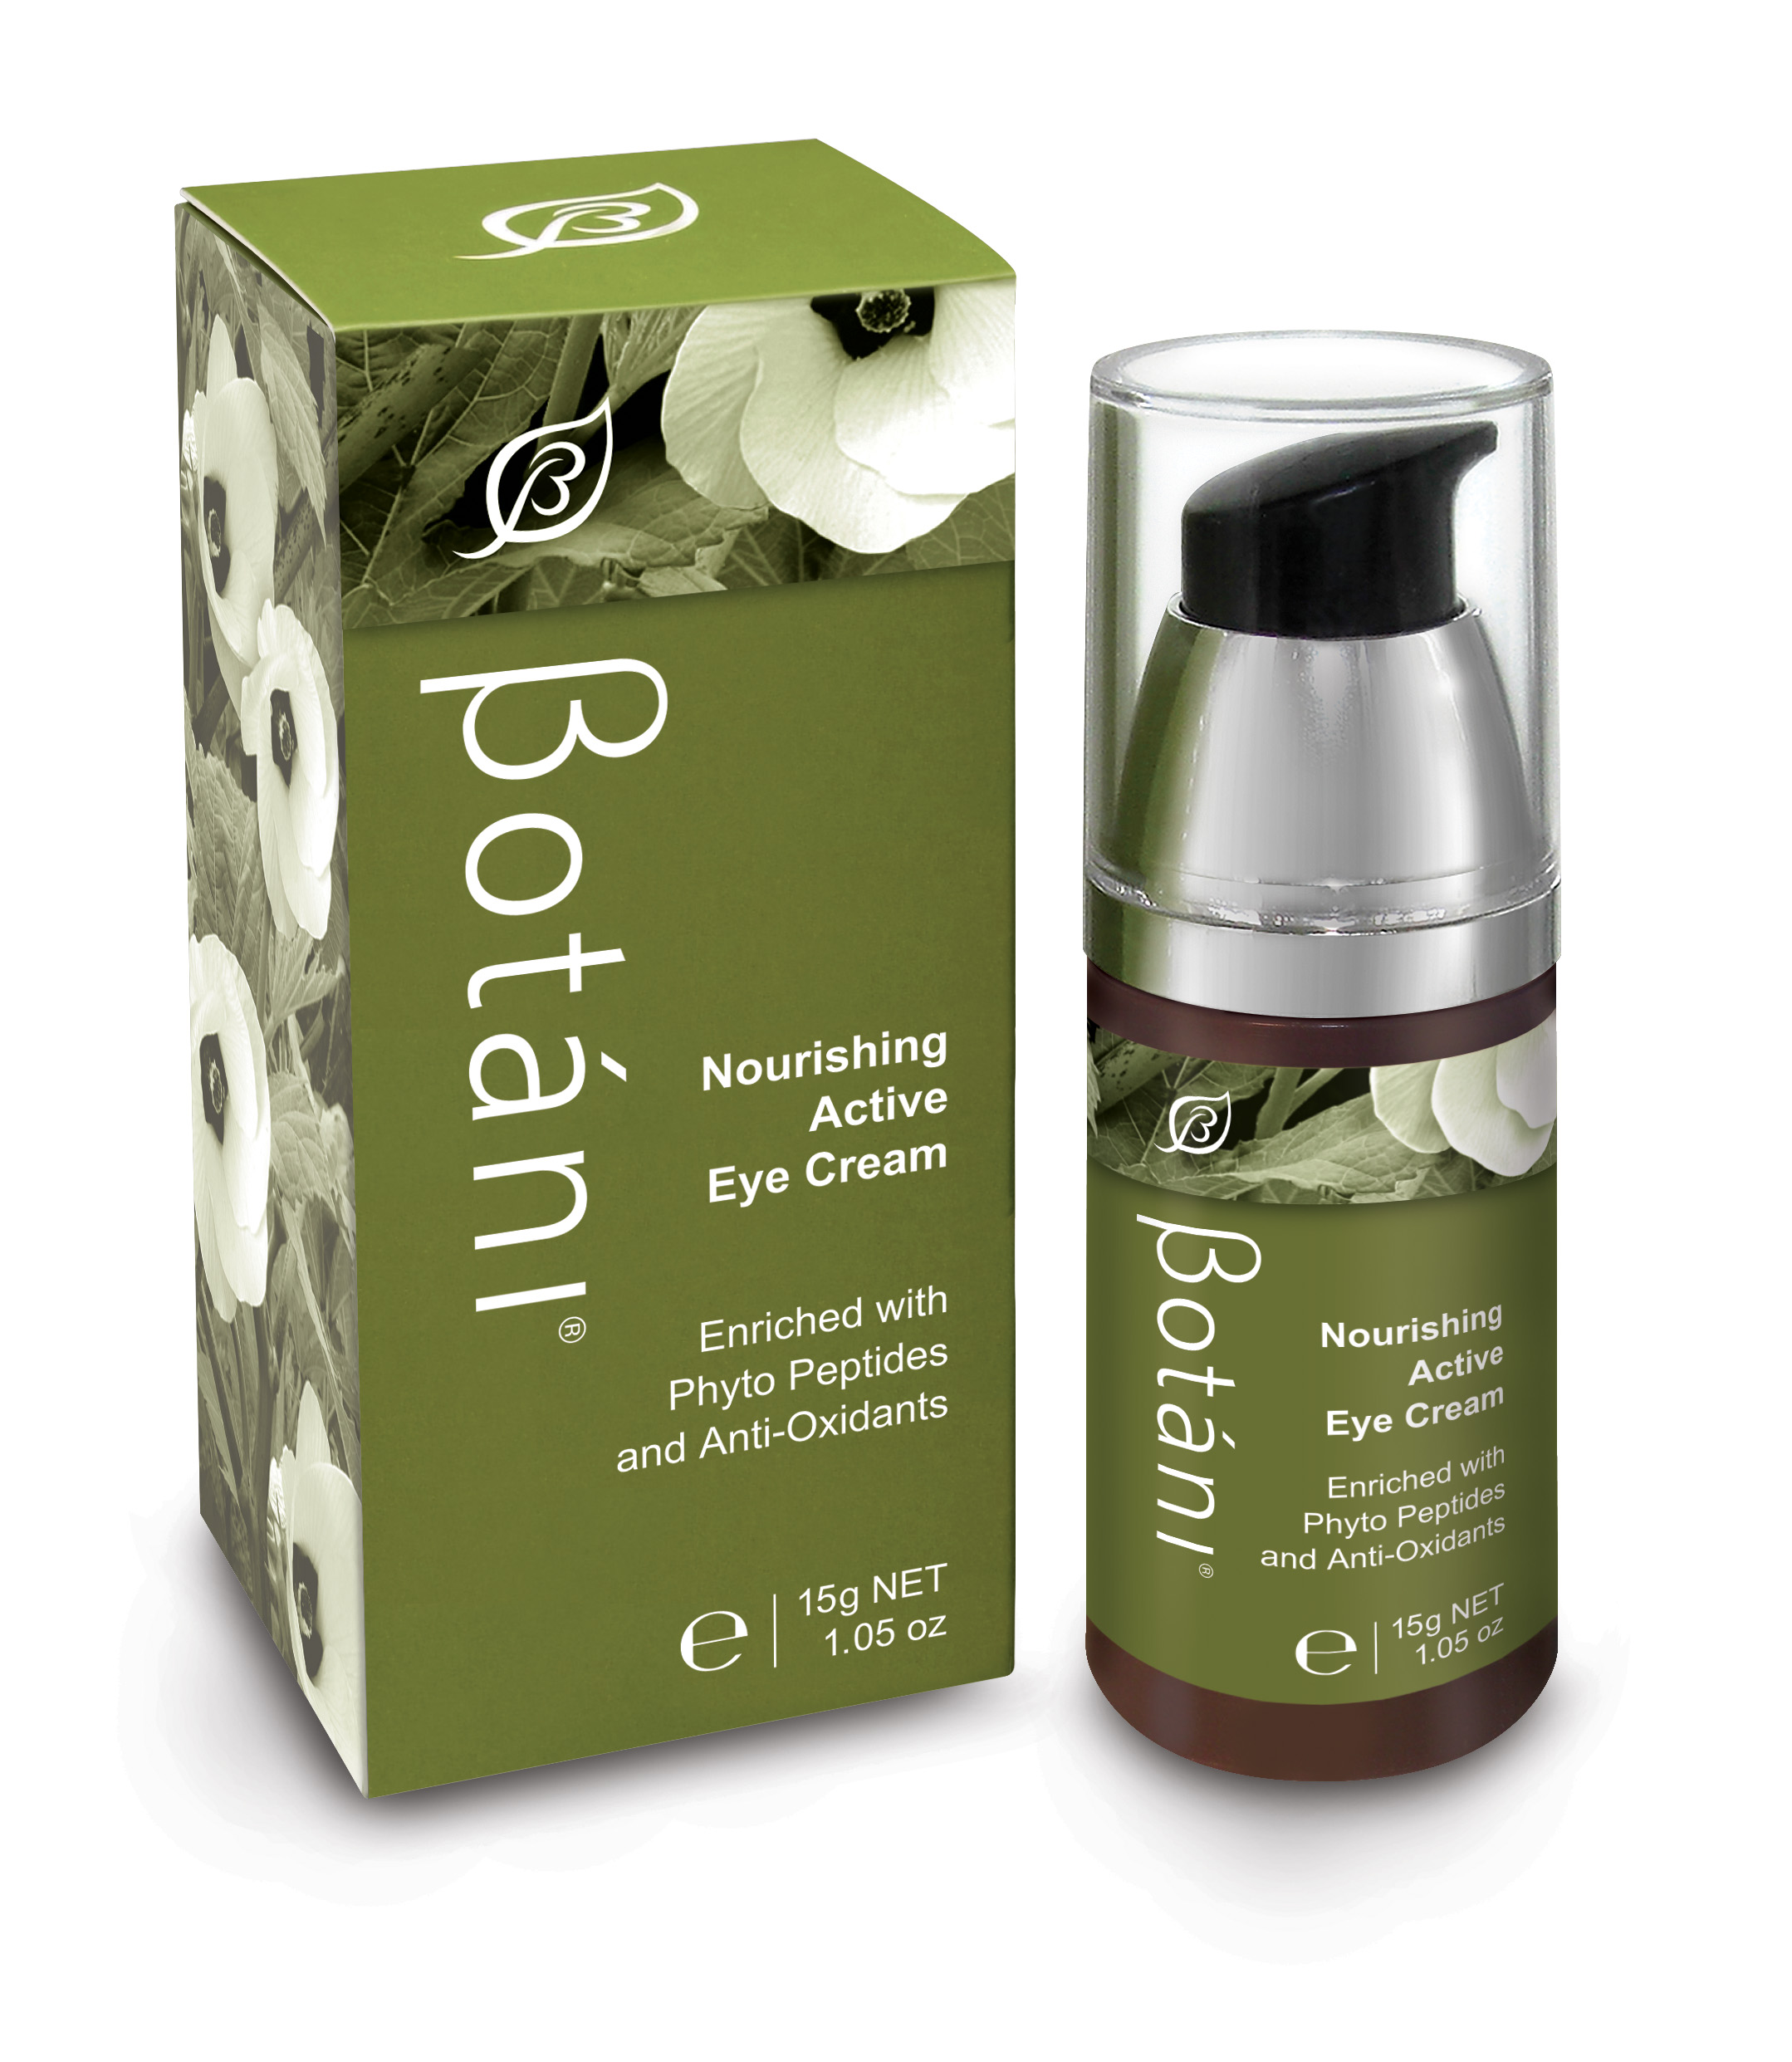 Nourishing Active Eye Cream